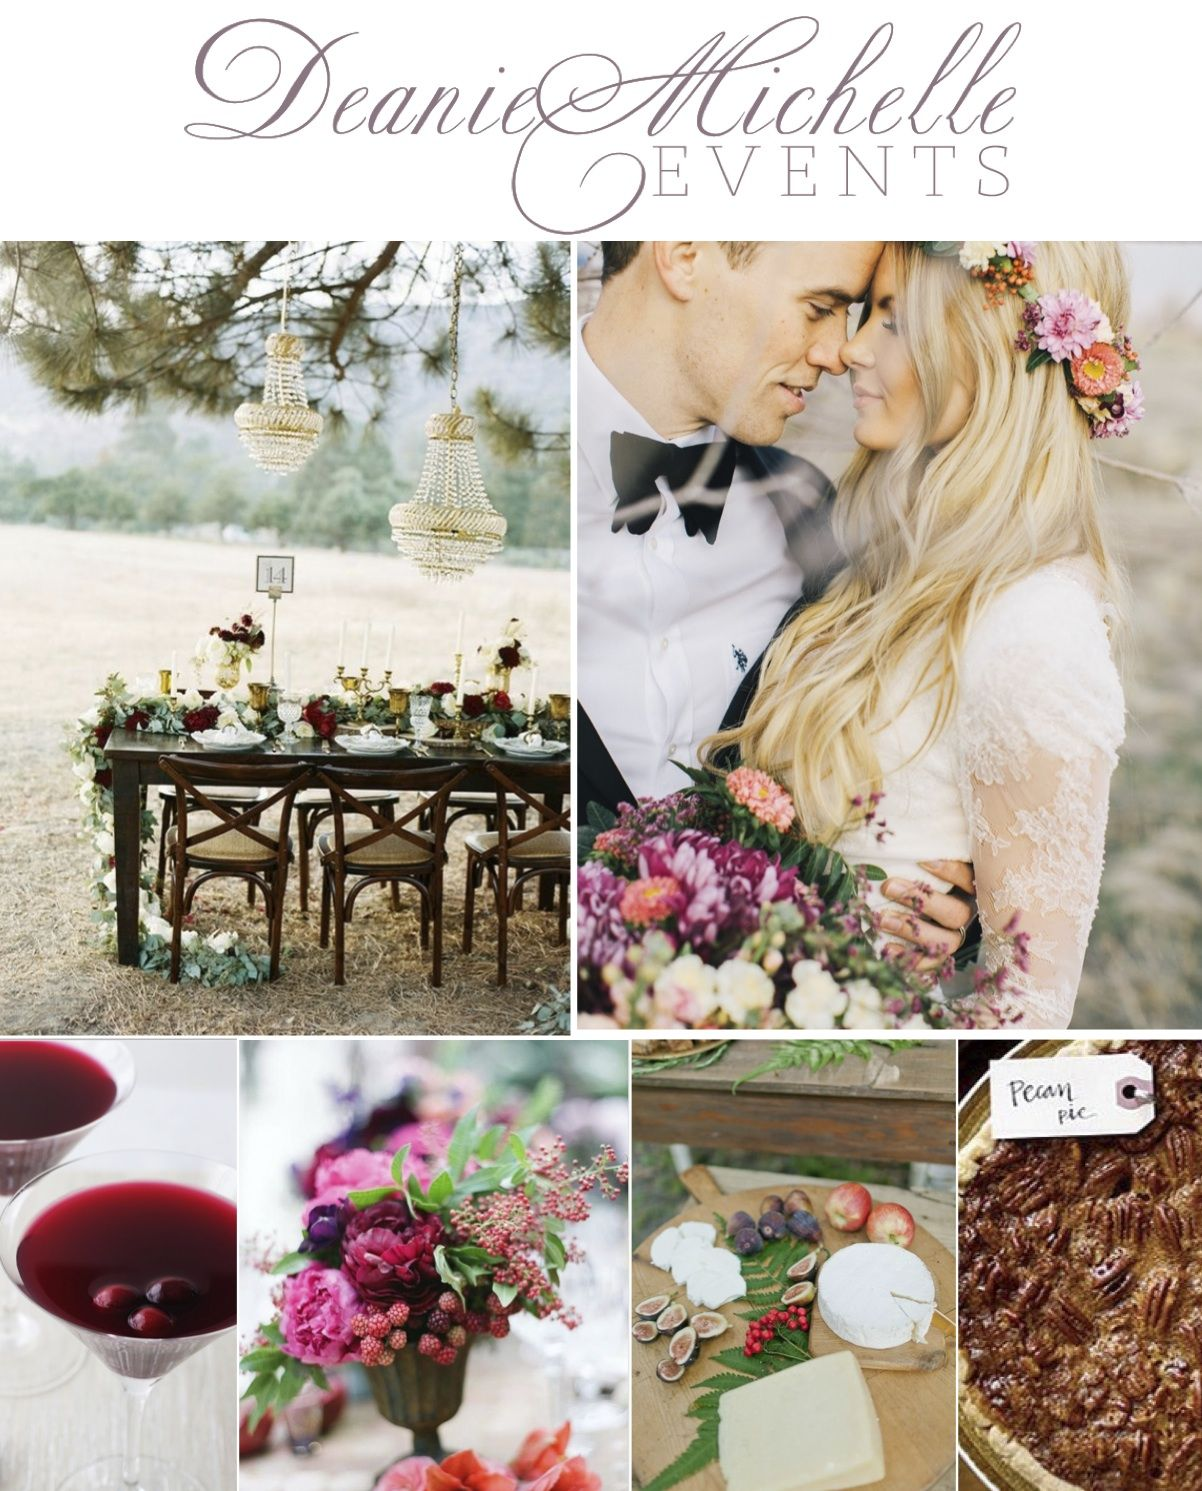 A sweet farm-to-table Thanksgiving family style inspired wedding mood board by Deanie Michelle Events   Dallas Wedding Planner